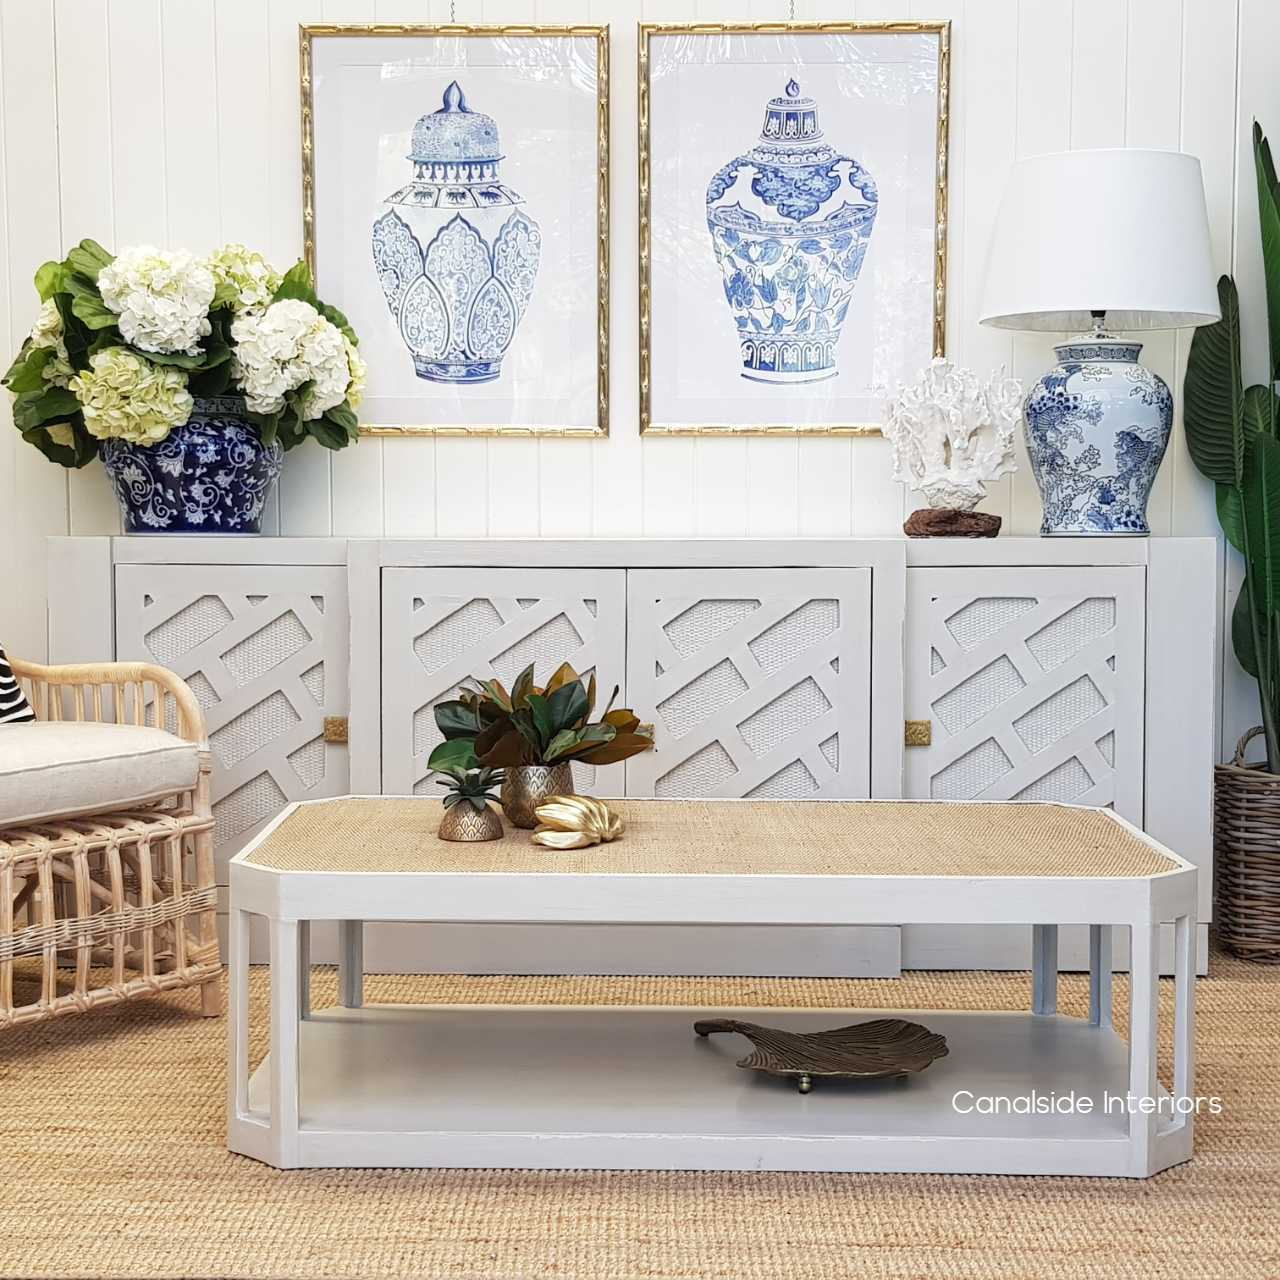 Brielle Rattan Coffee Table  TABLES, HAMPTONS Style, PLANTATION Style, TABLES Coffee Tables, LIVING Room, LIVING Coffee & Side Tables, Coastal, British Colonial, Island